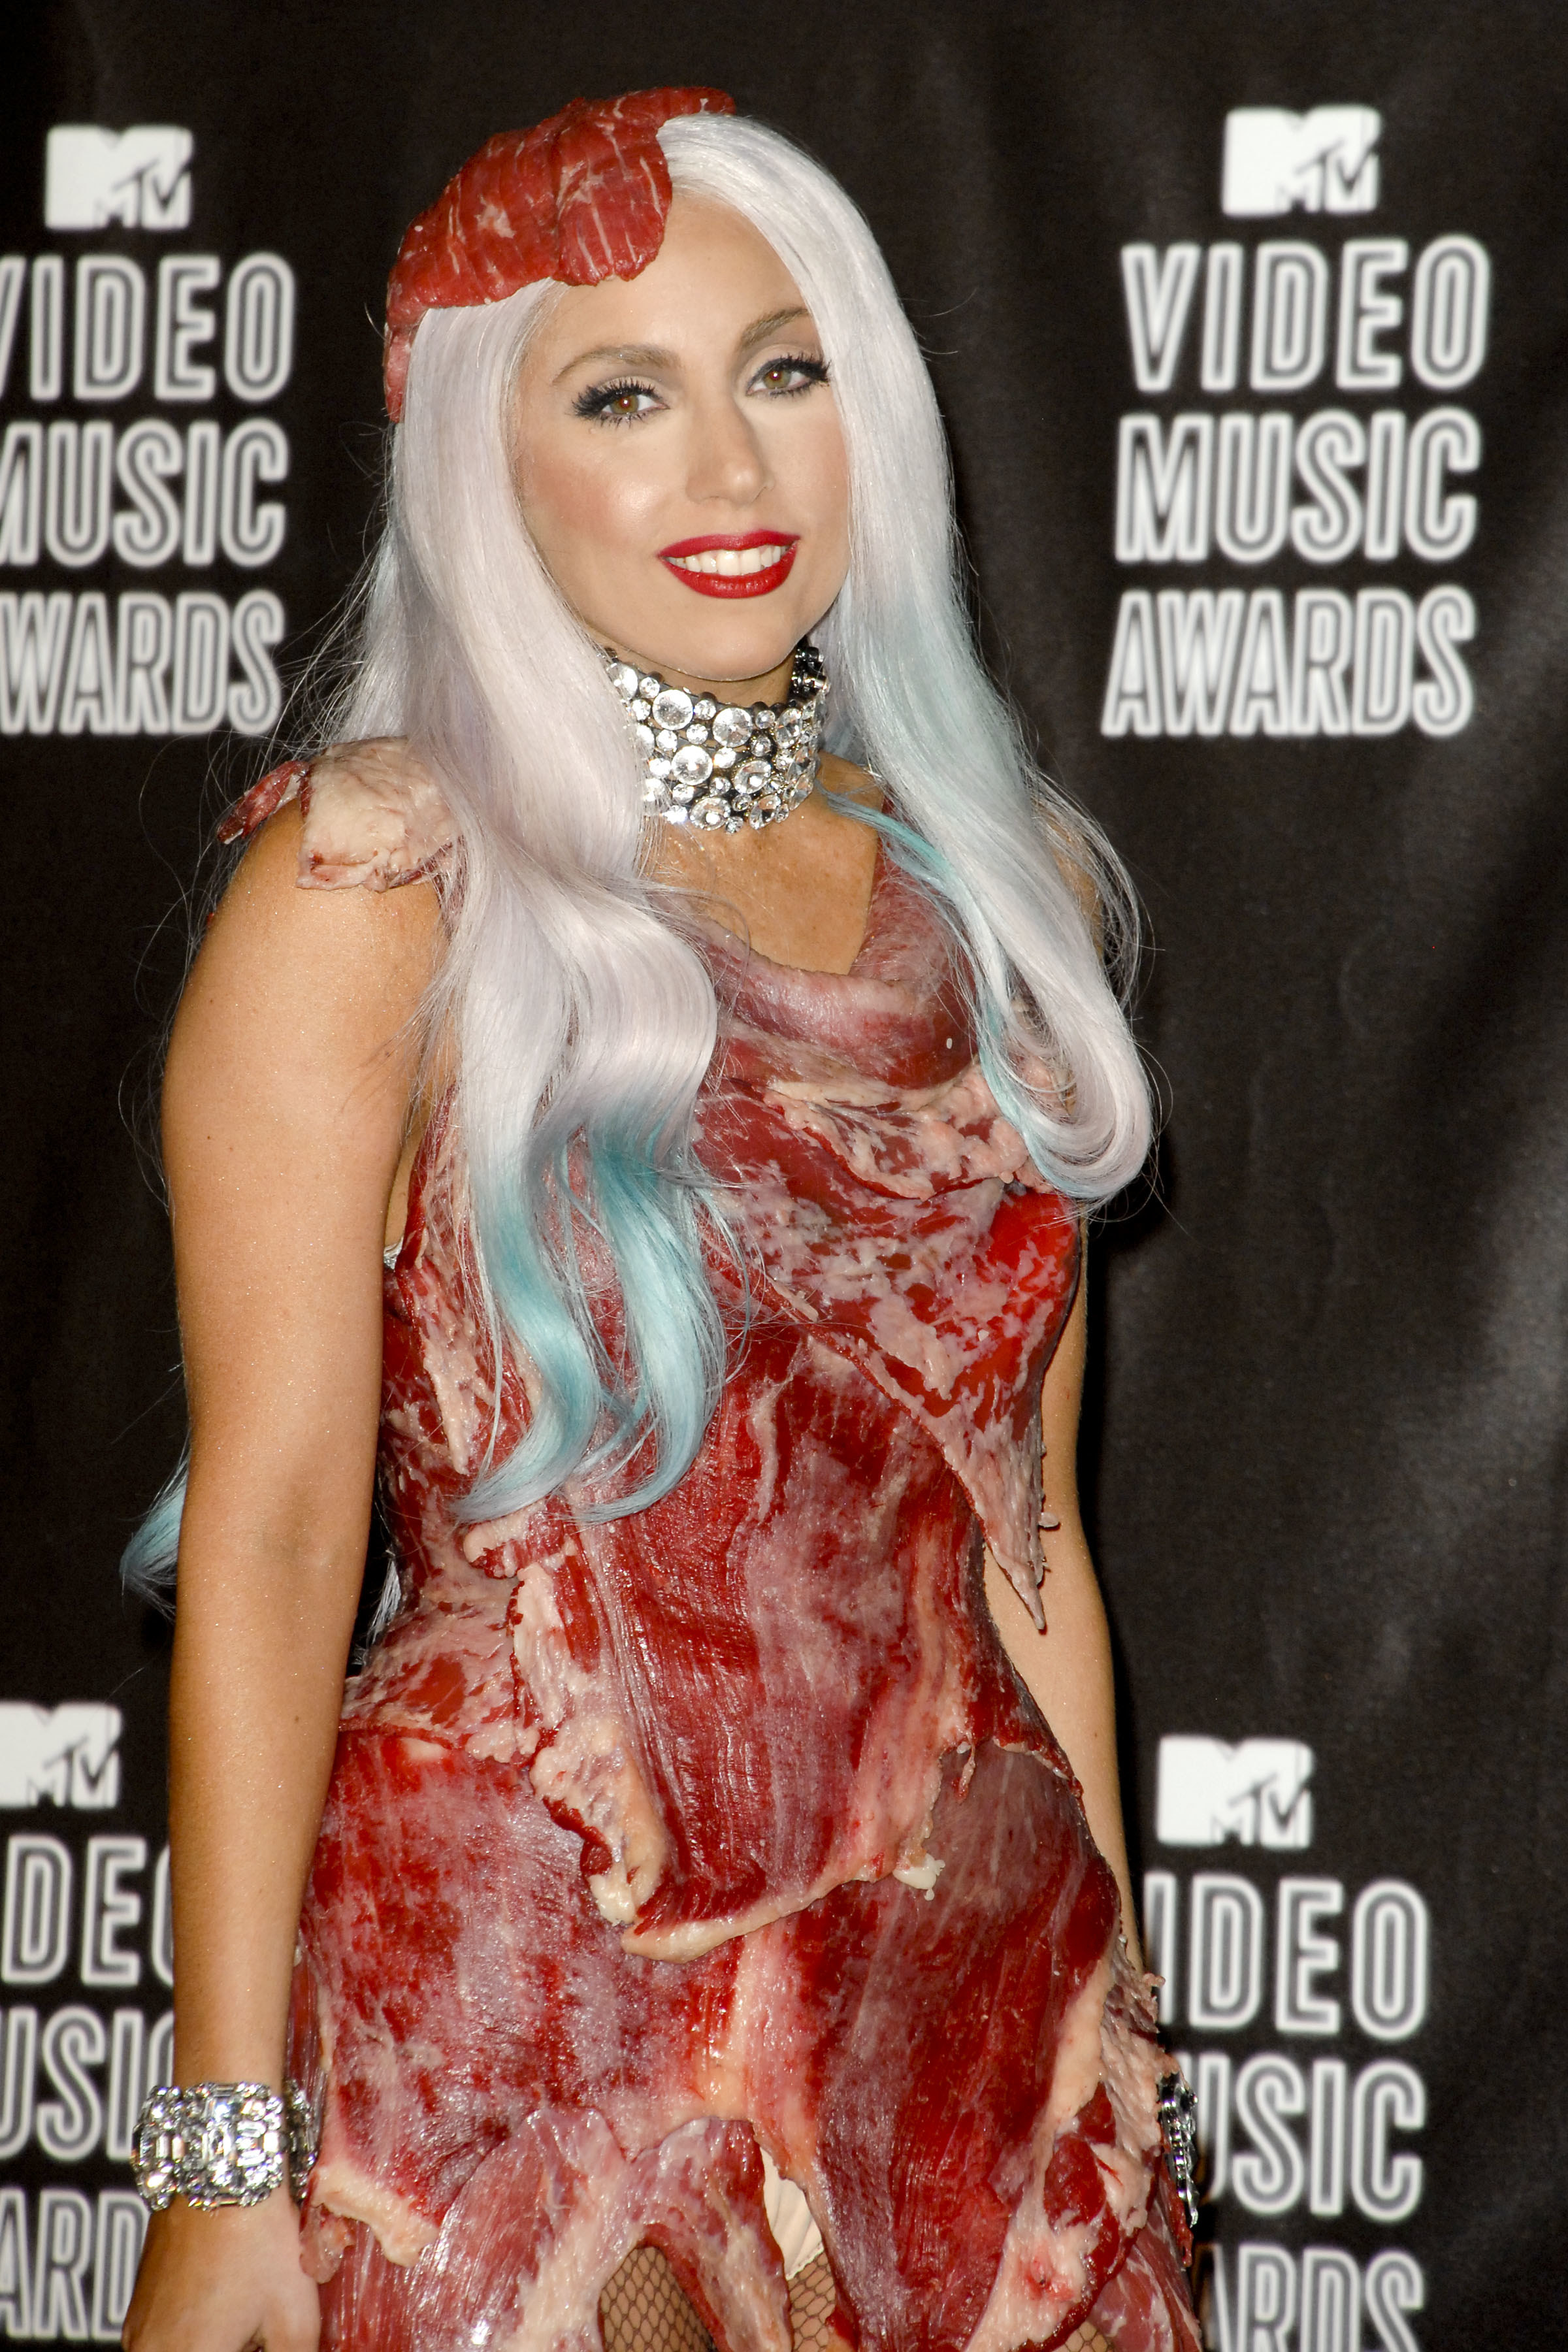 Lady Gaga at the Video Music Awards in 2010